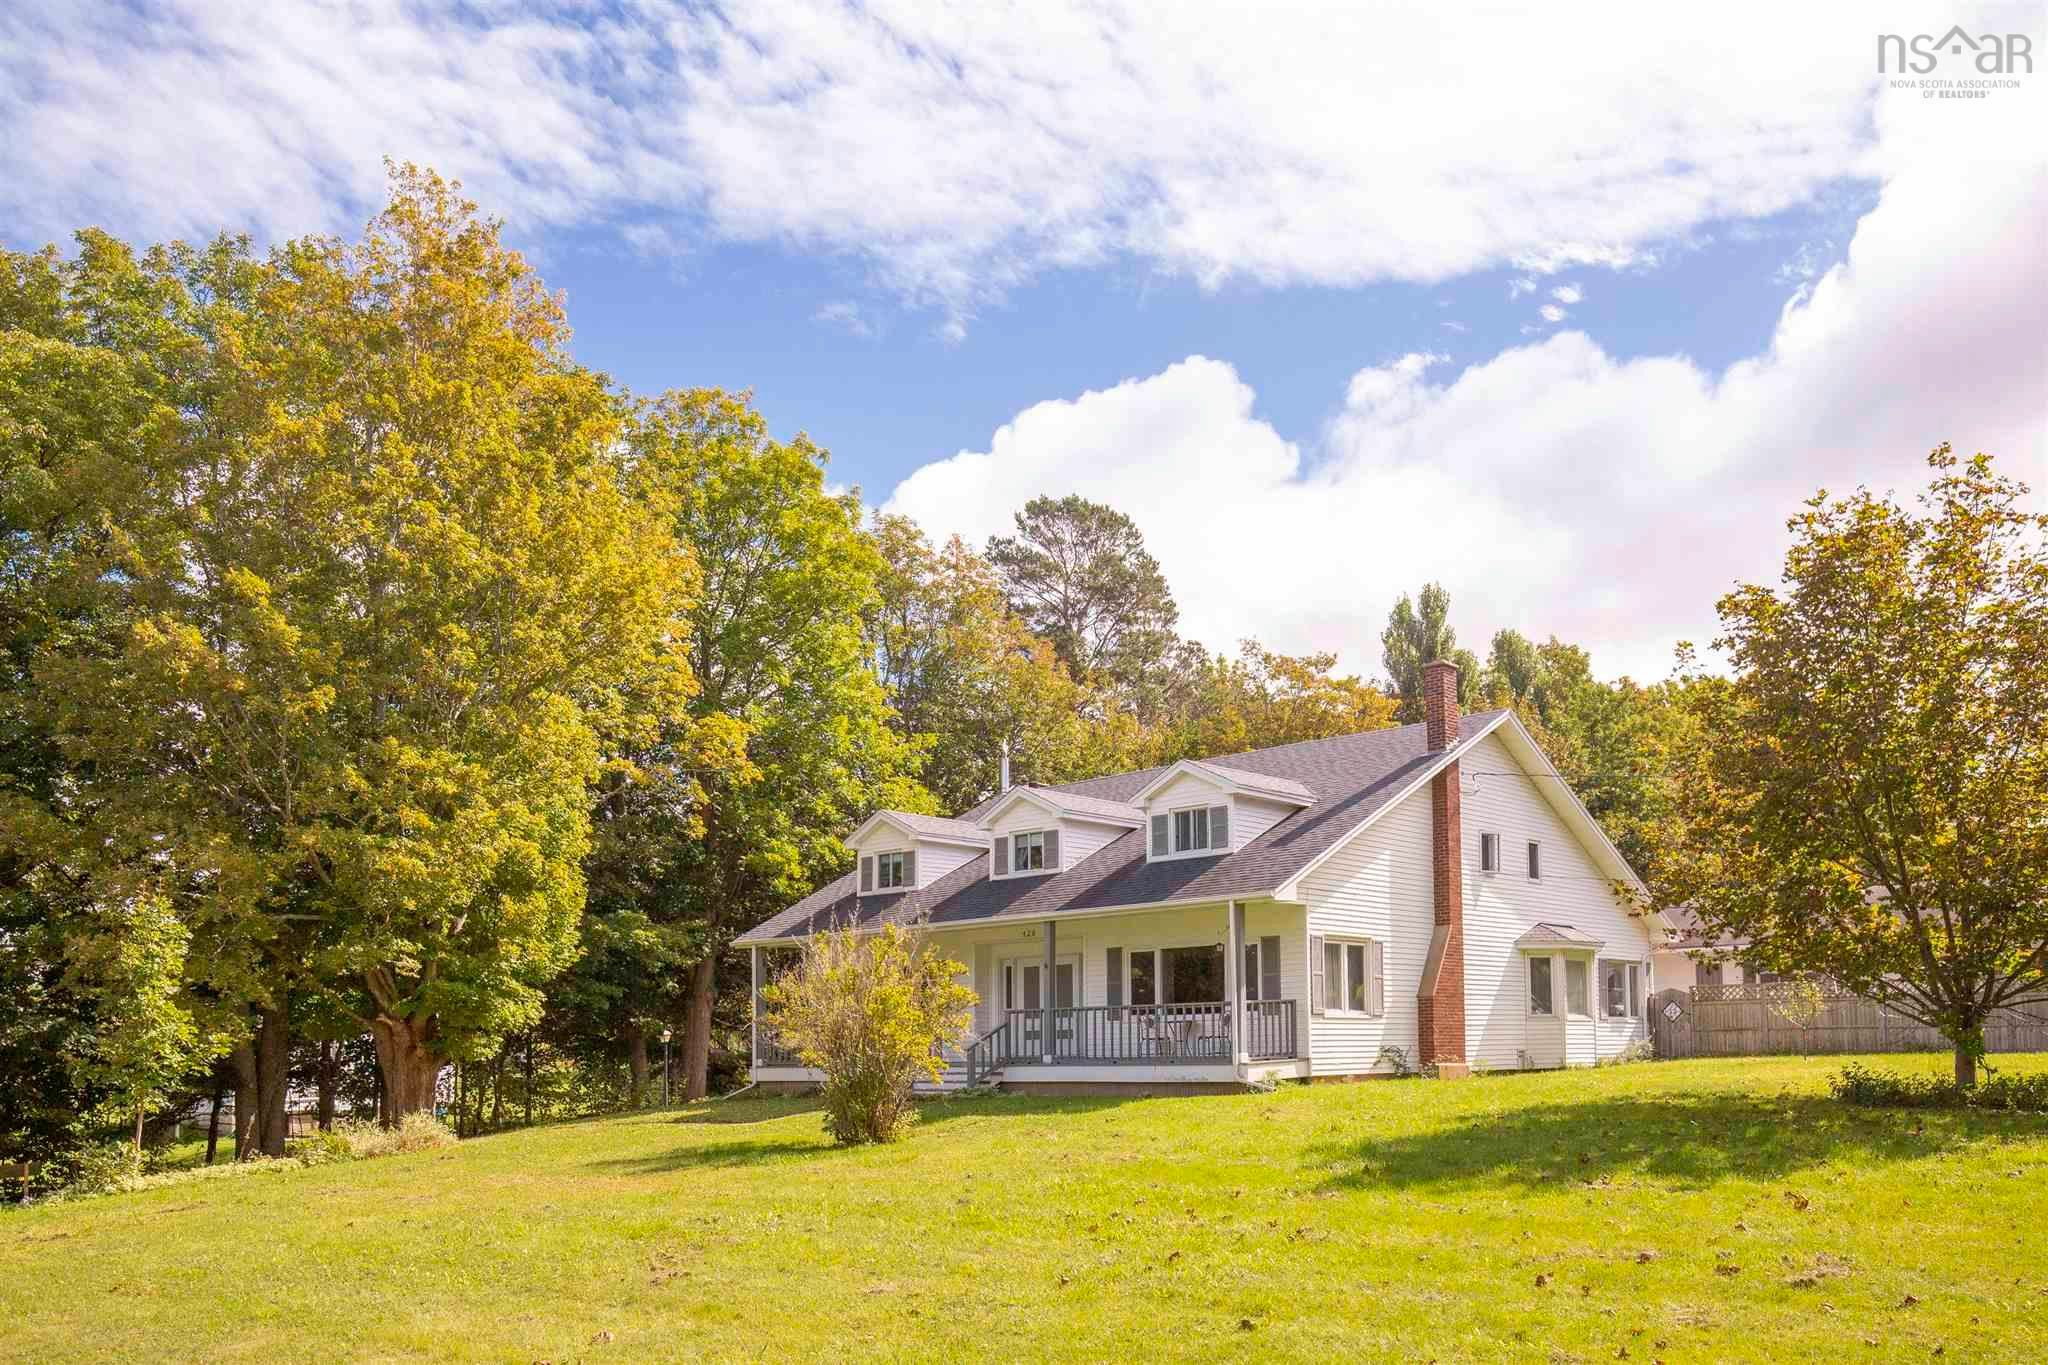 Main Photo: 428 HIGHWAY 1 in Deep Brook: 400-Annapolis County Residential for sale (Annapolis Valley)  : MLS®# 202125364